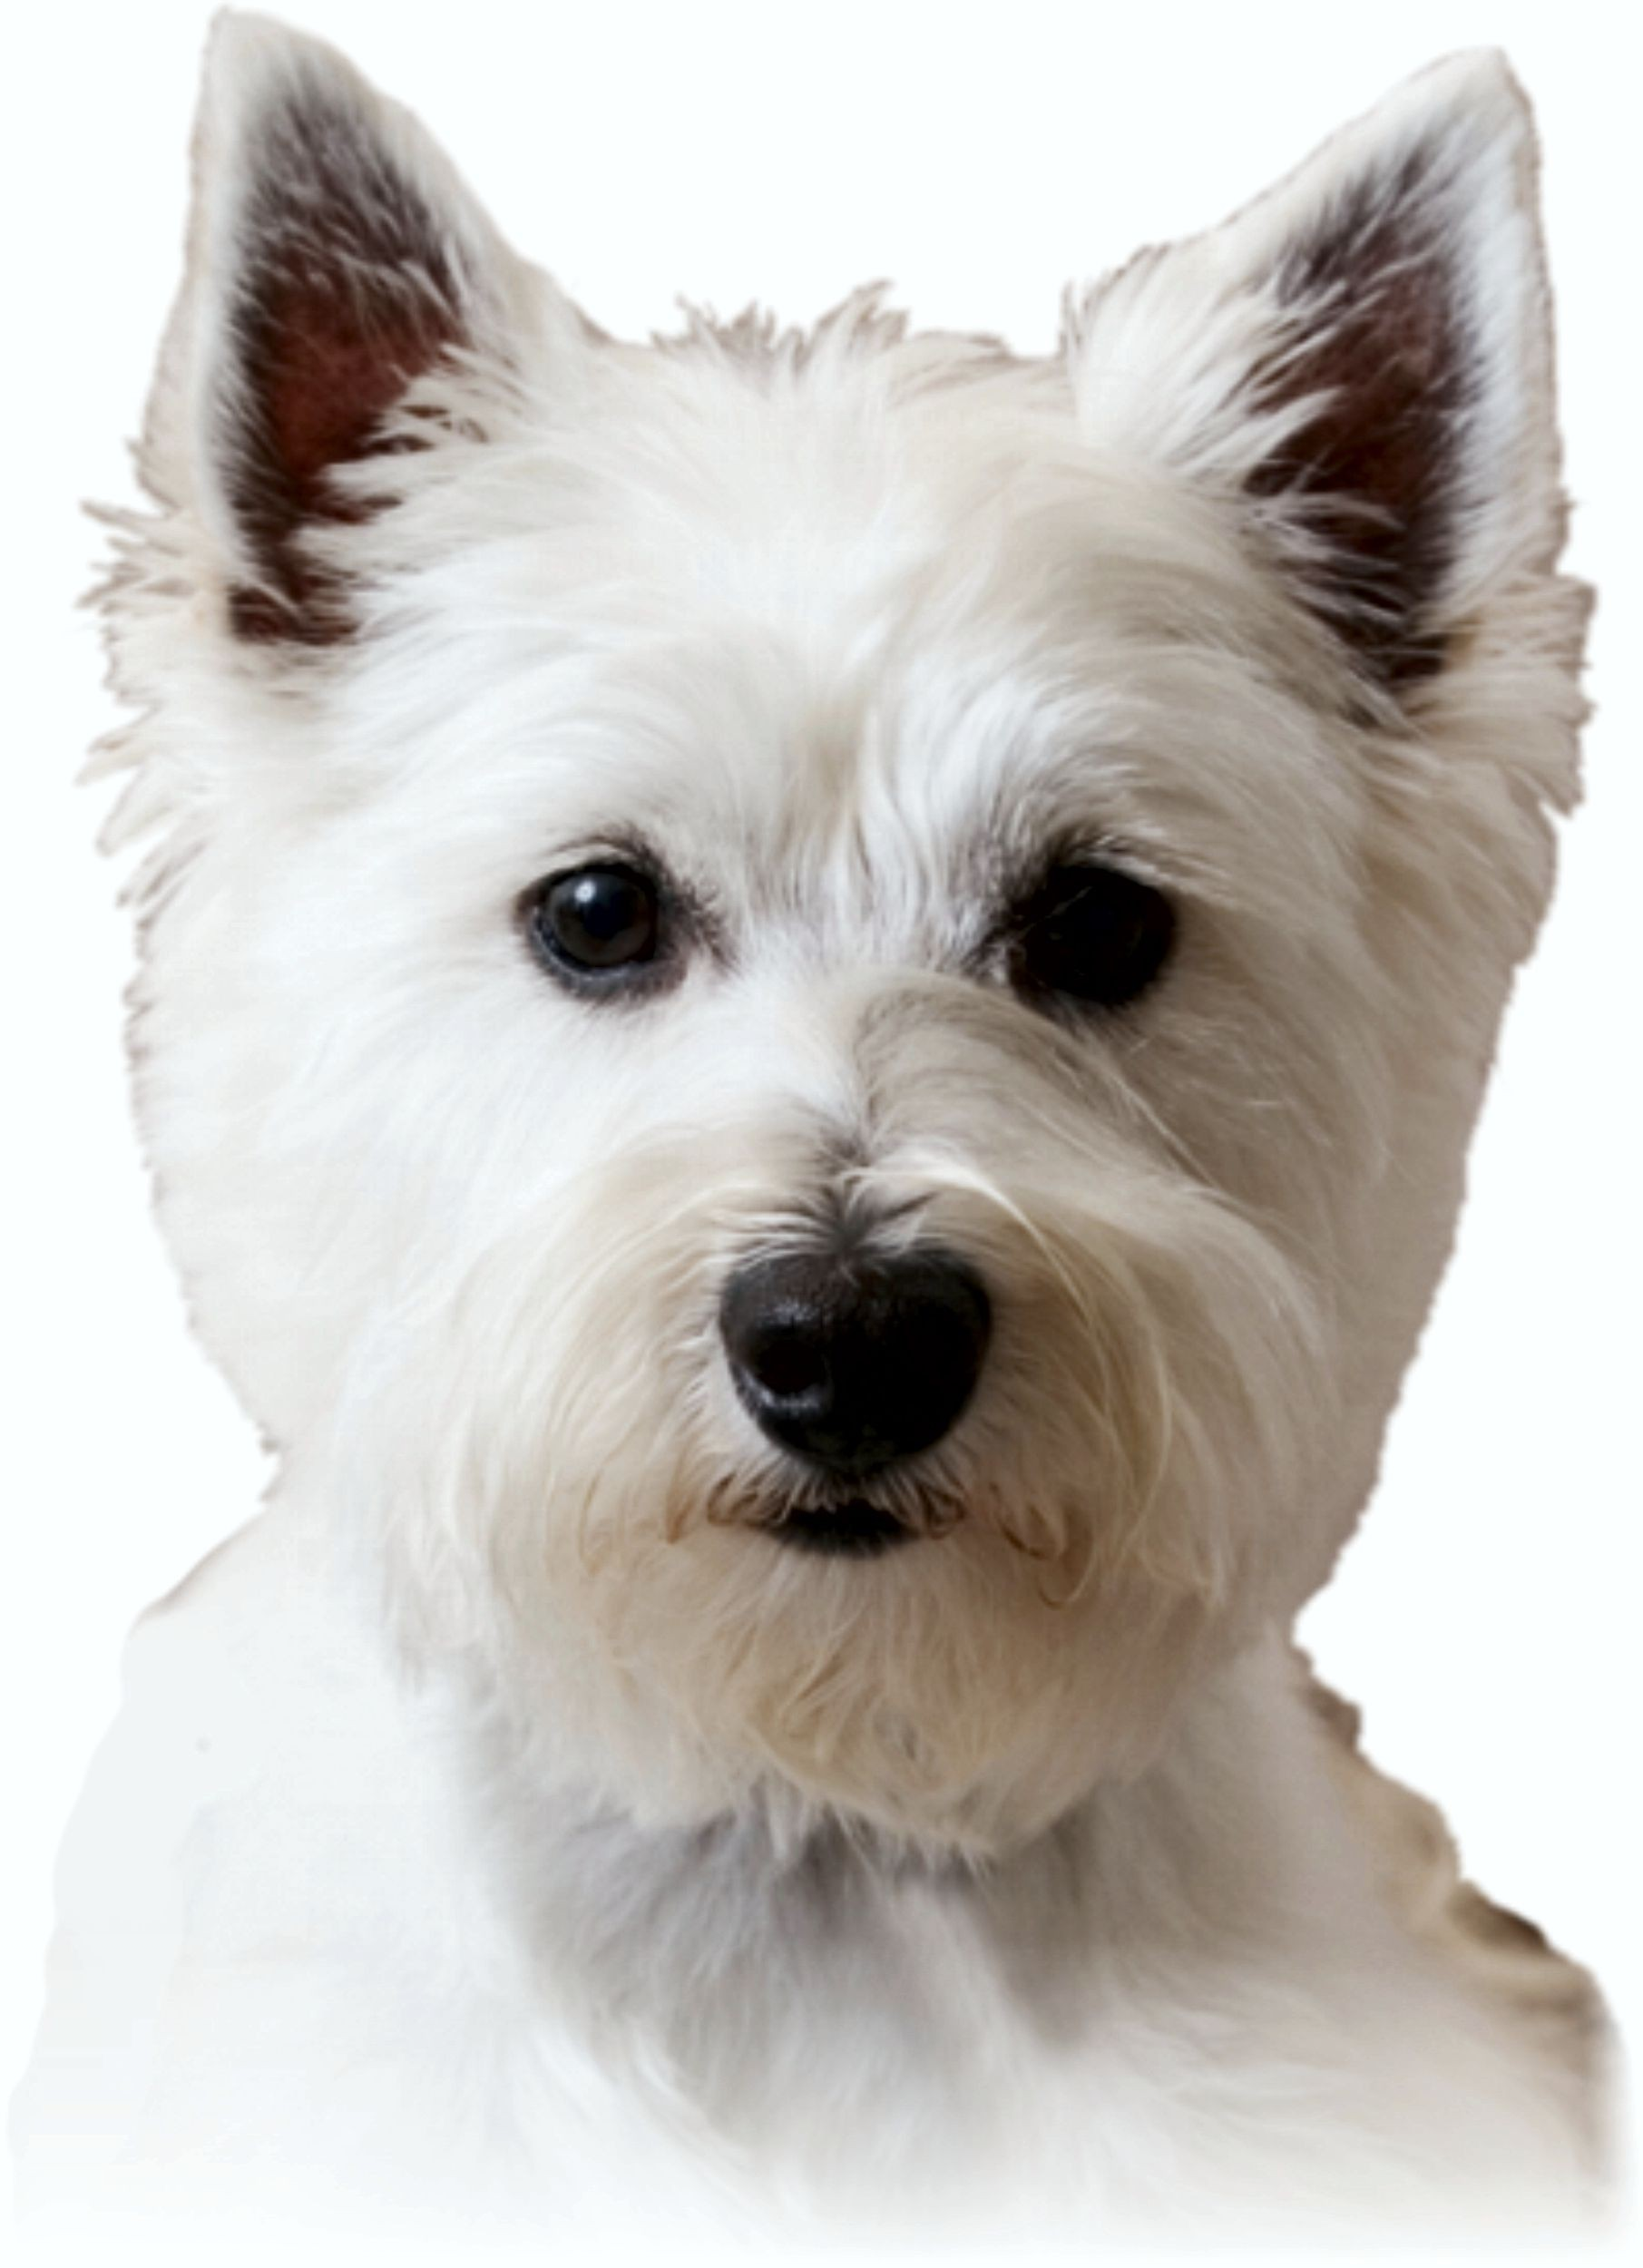 Sticker dog westie 125 x 110 mm – Bild 1